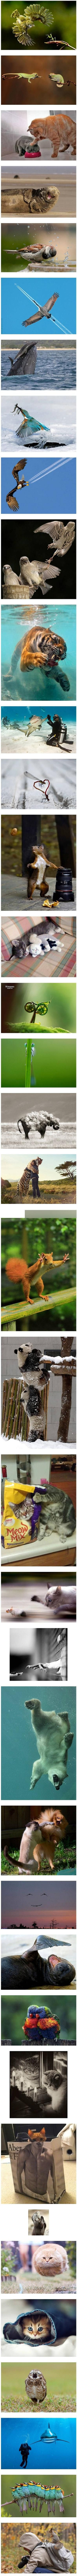 LOL!! These 38 perfectly-timed animal photos are awesome!...